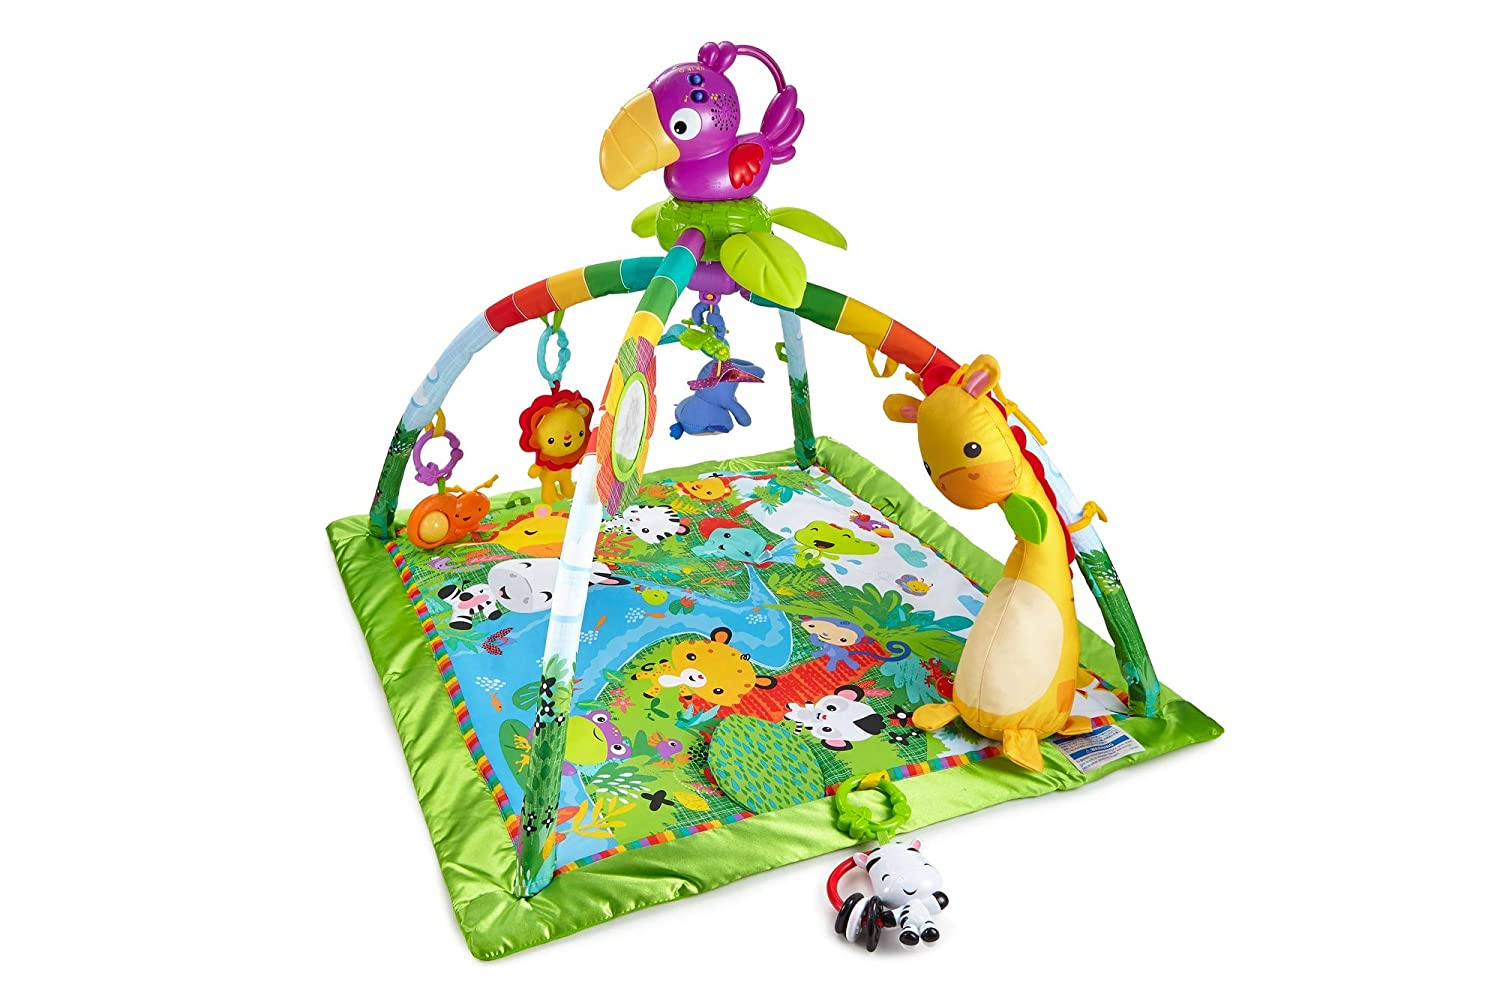 Fisher Price Rainforest Music Lights Deluxe Gym Best Baby Play Mat